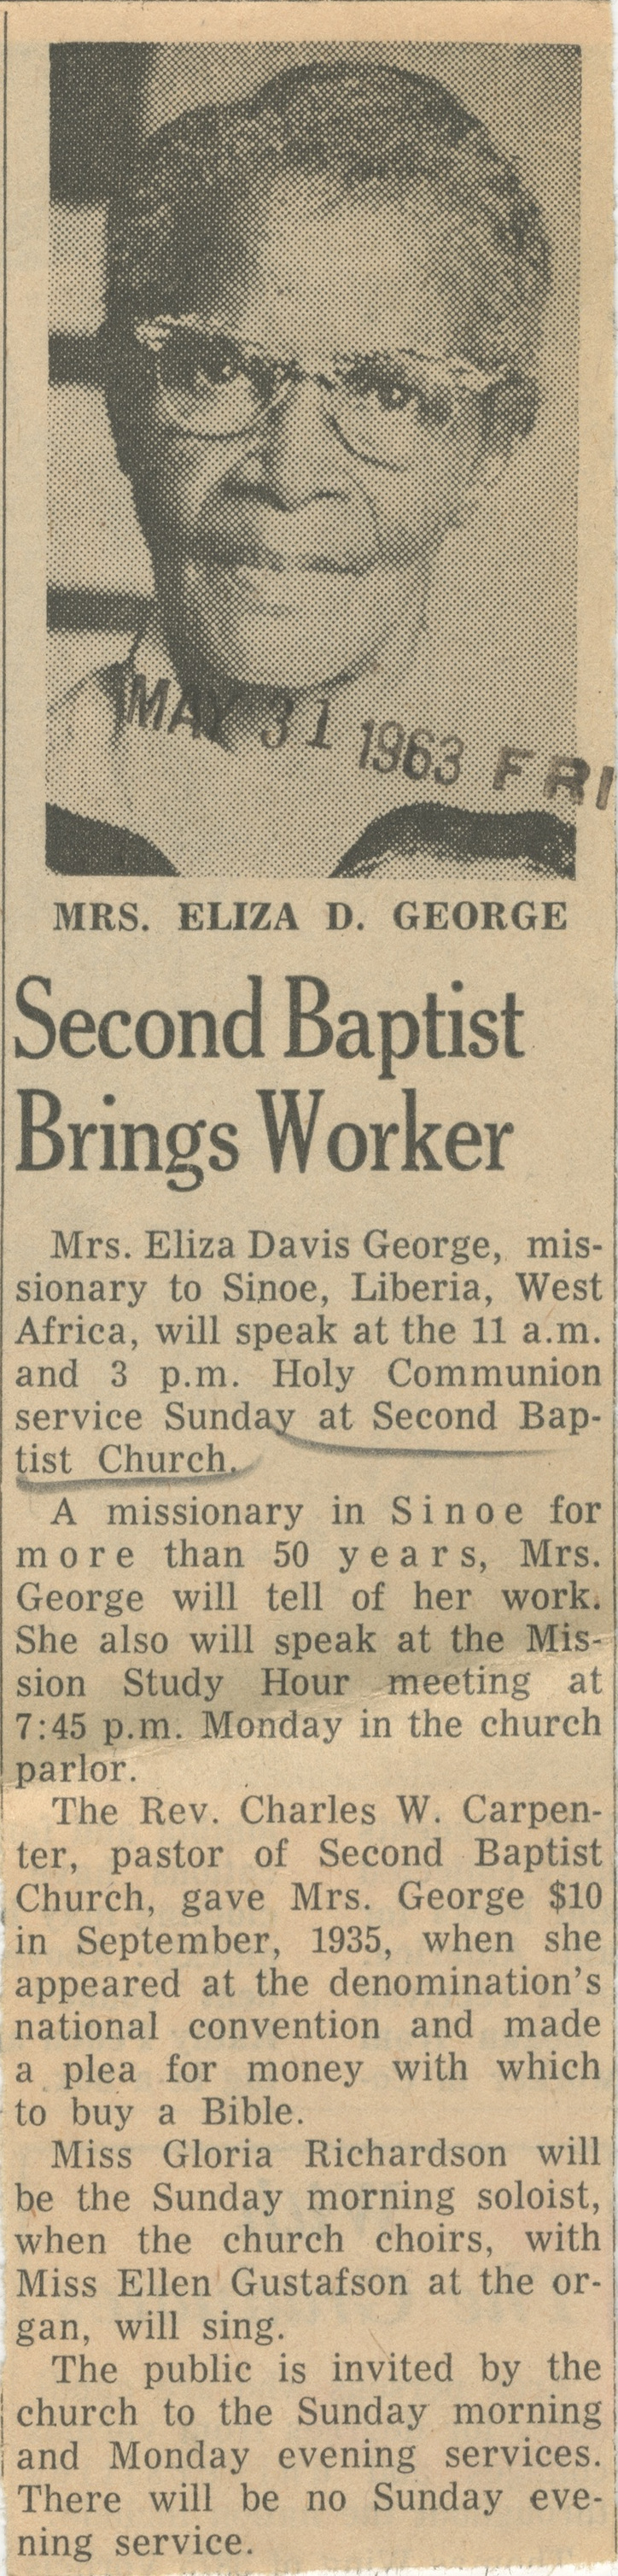 Second Baptist Brings Worker image